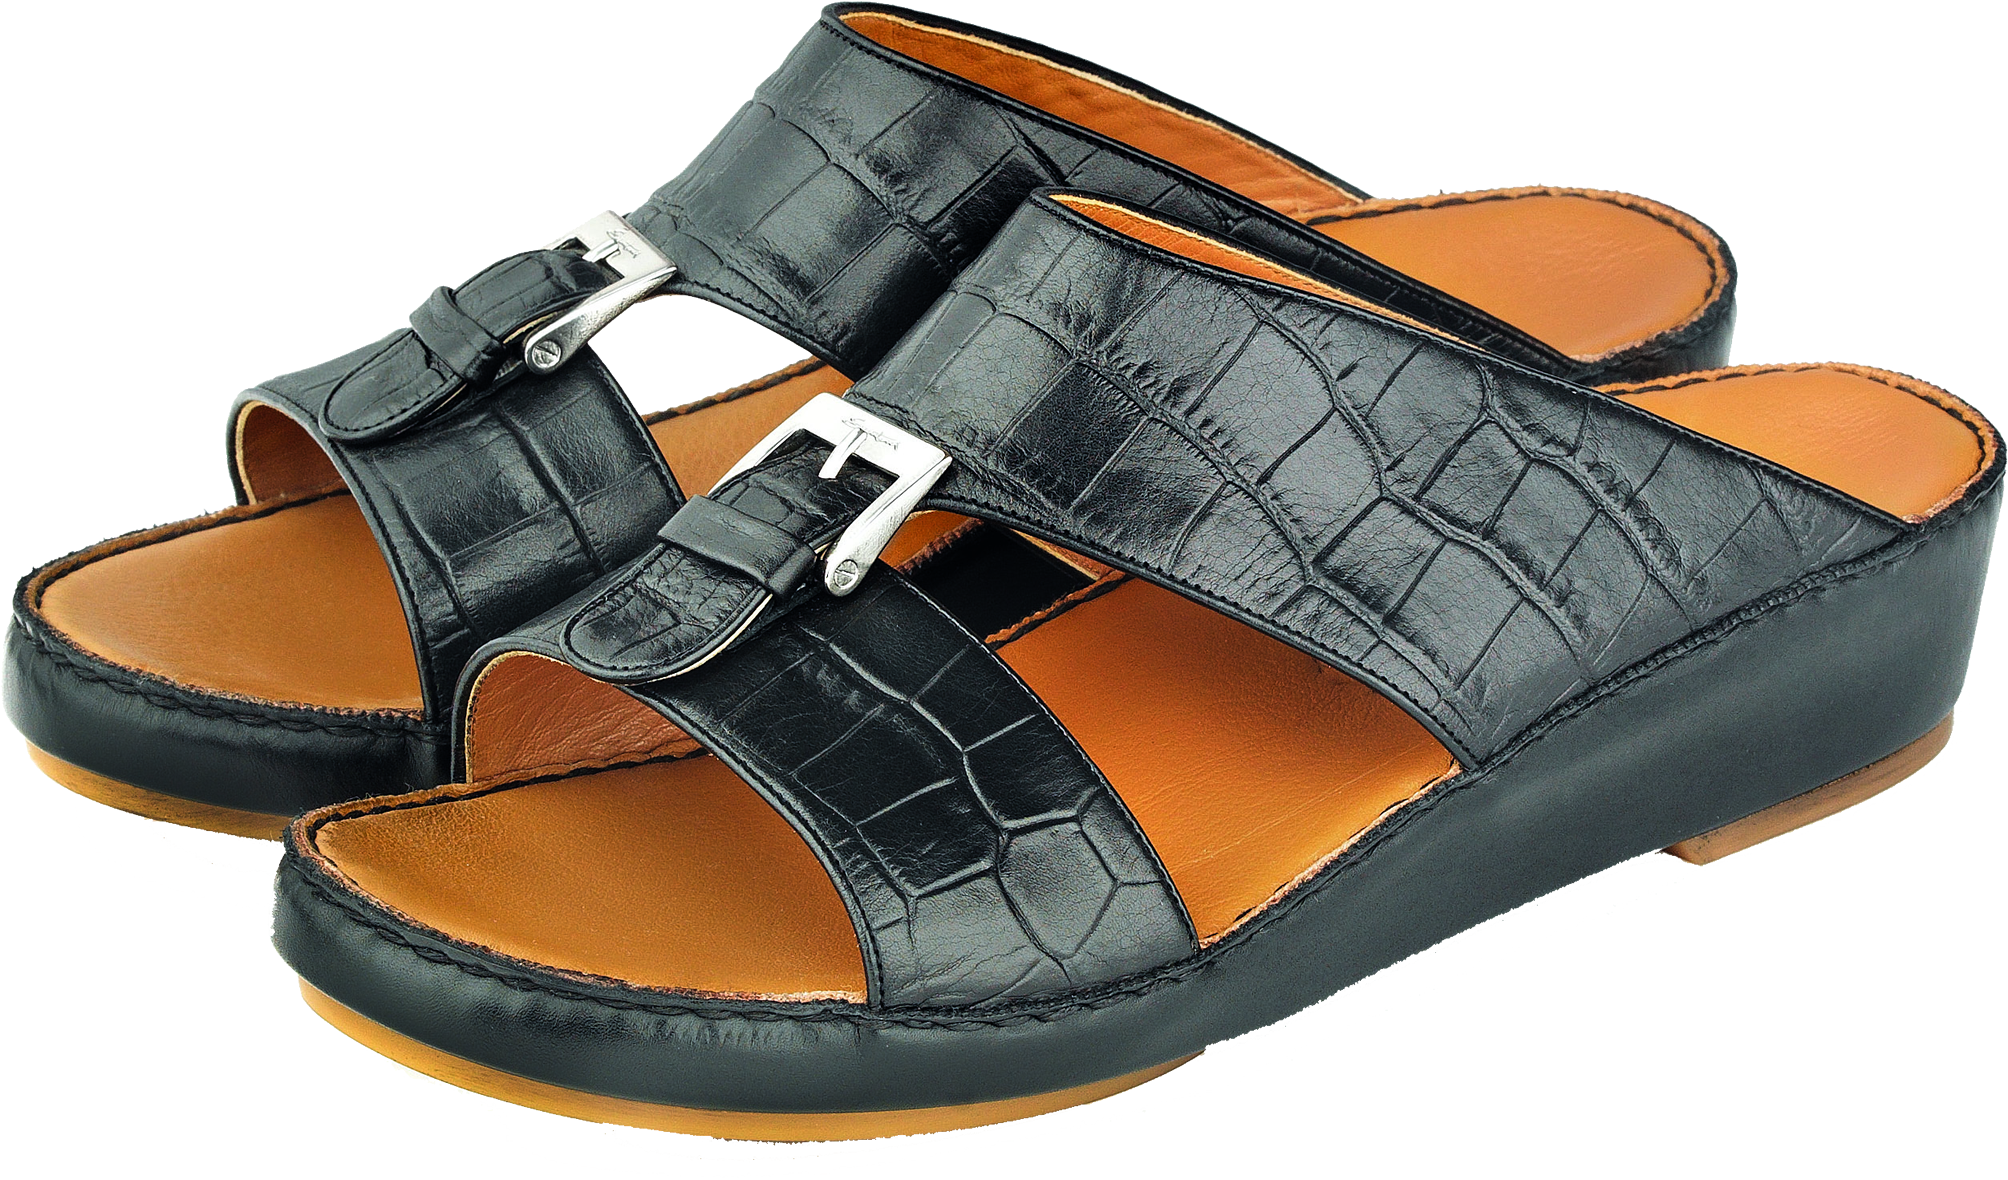 Leather sandals PNG image - Sandal PNG